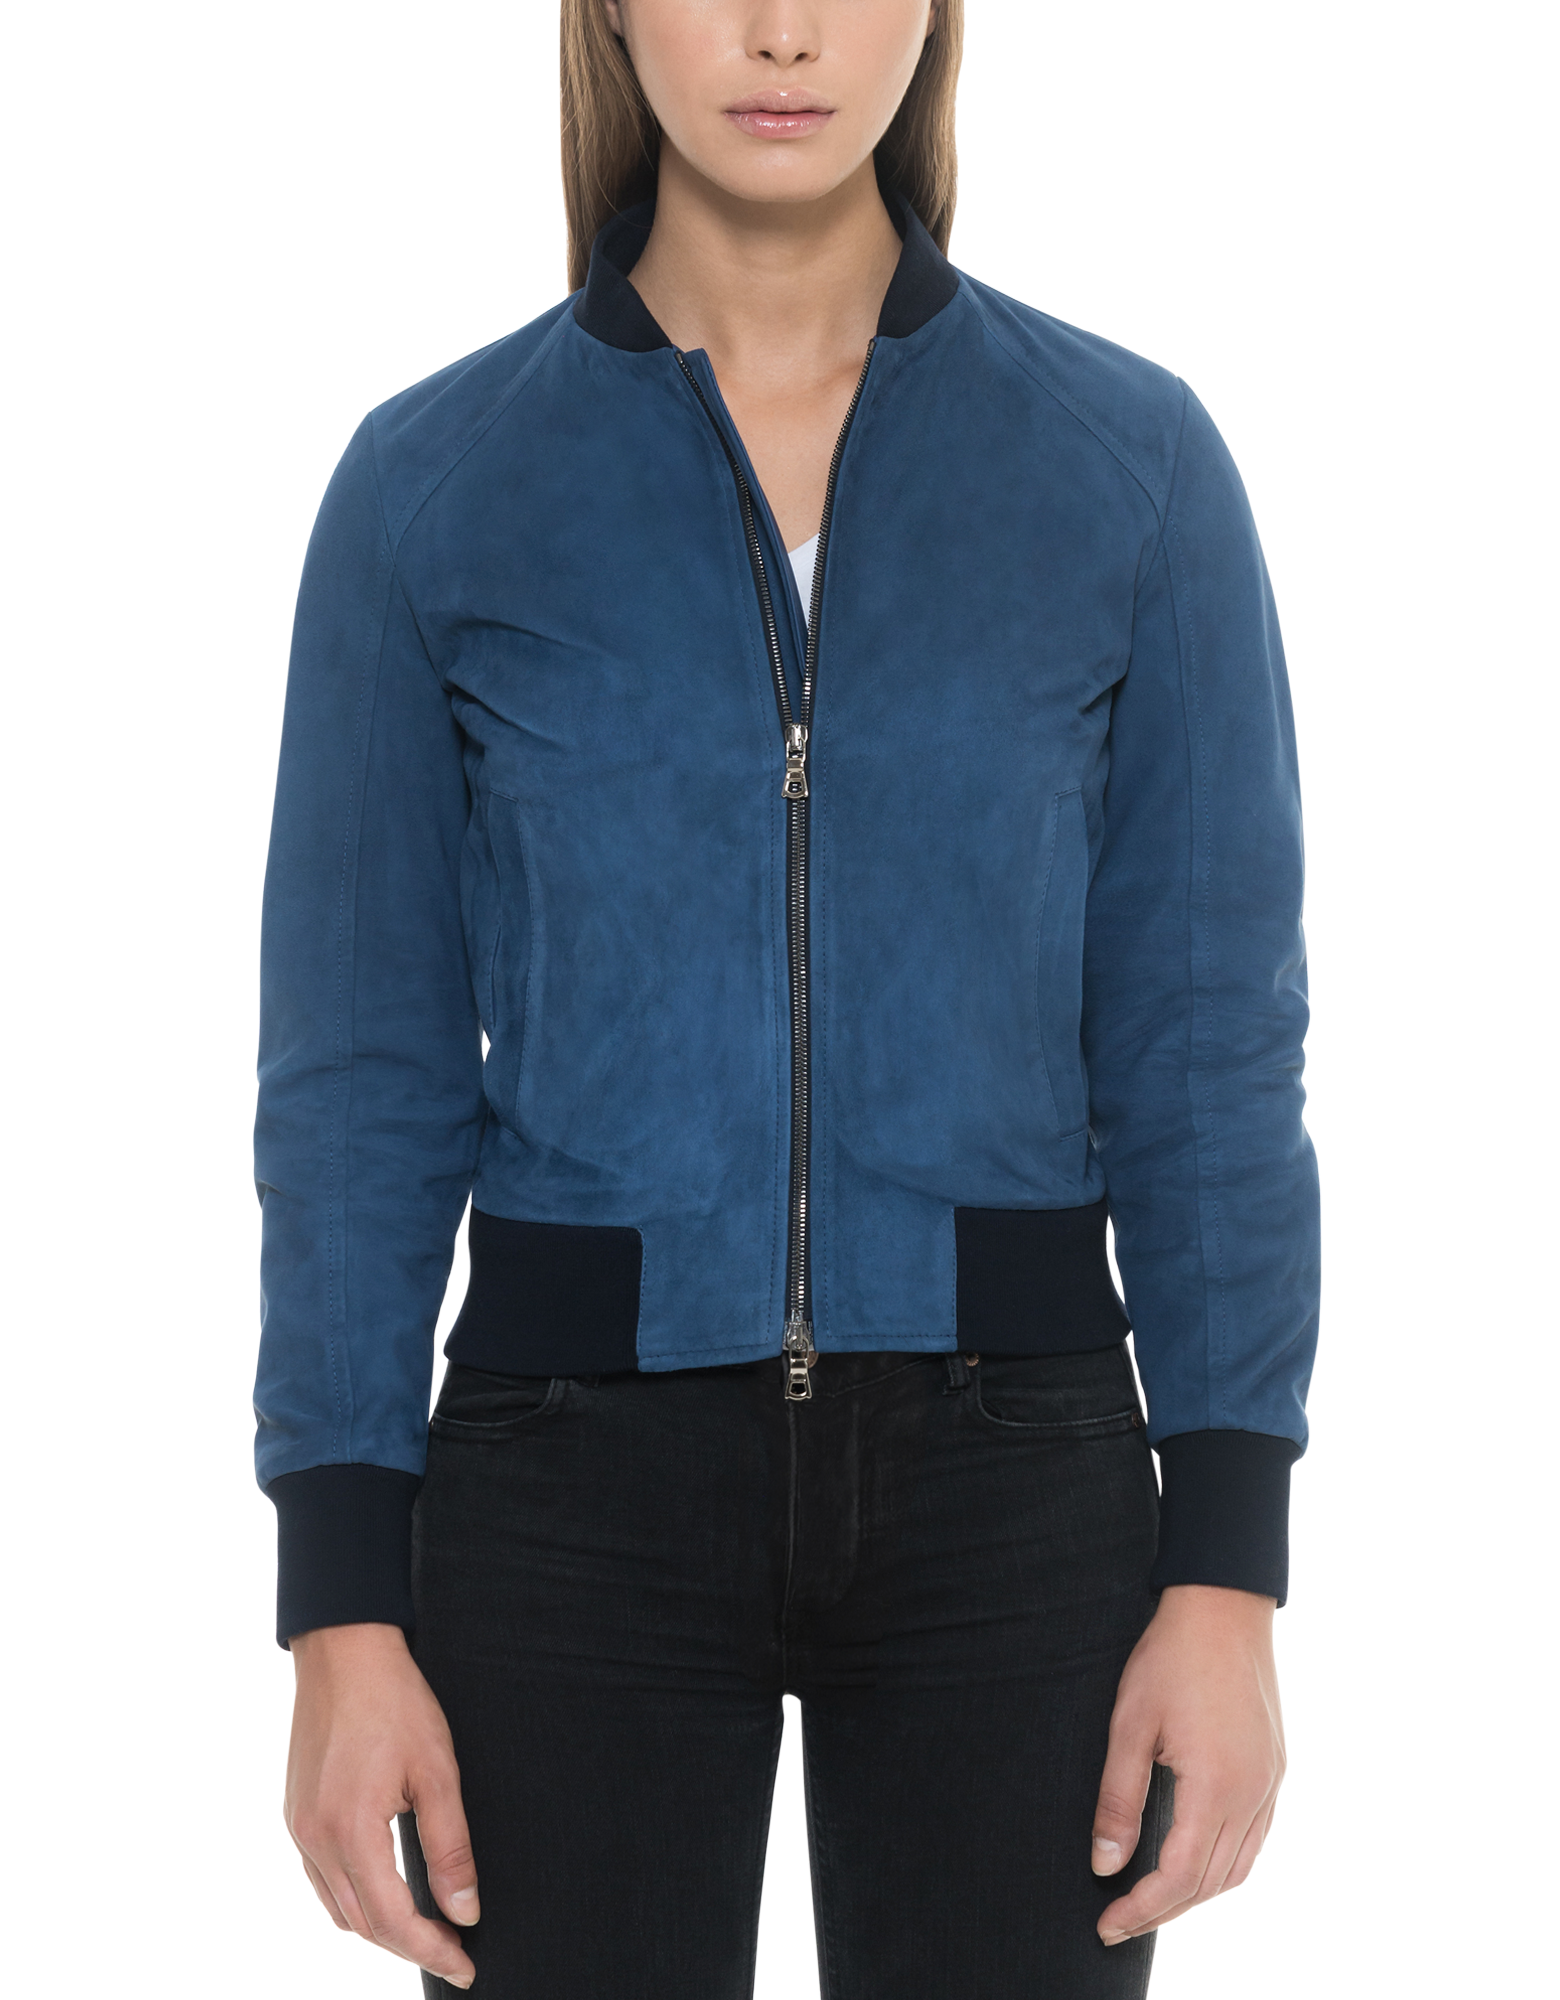 Image of Blue Suede Women's Bomber Jacket